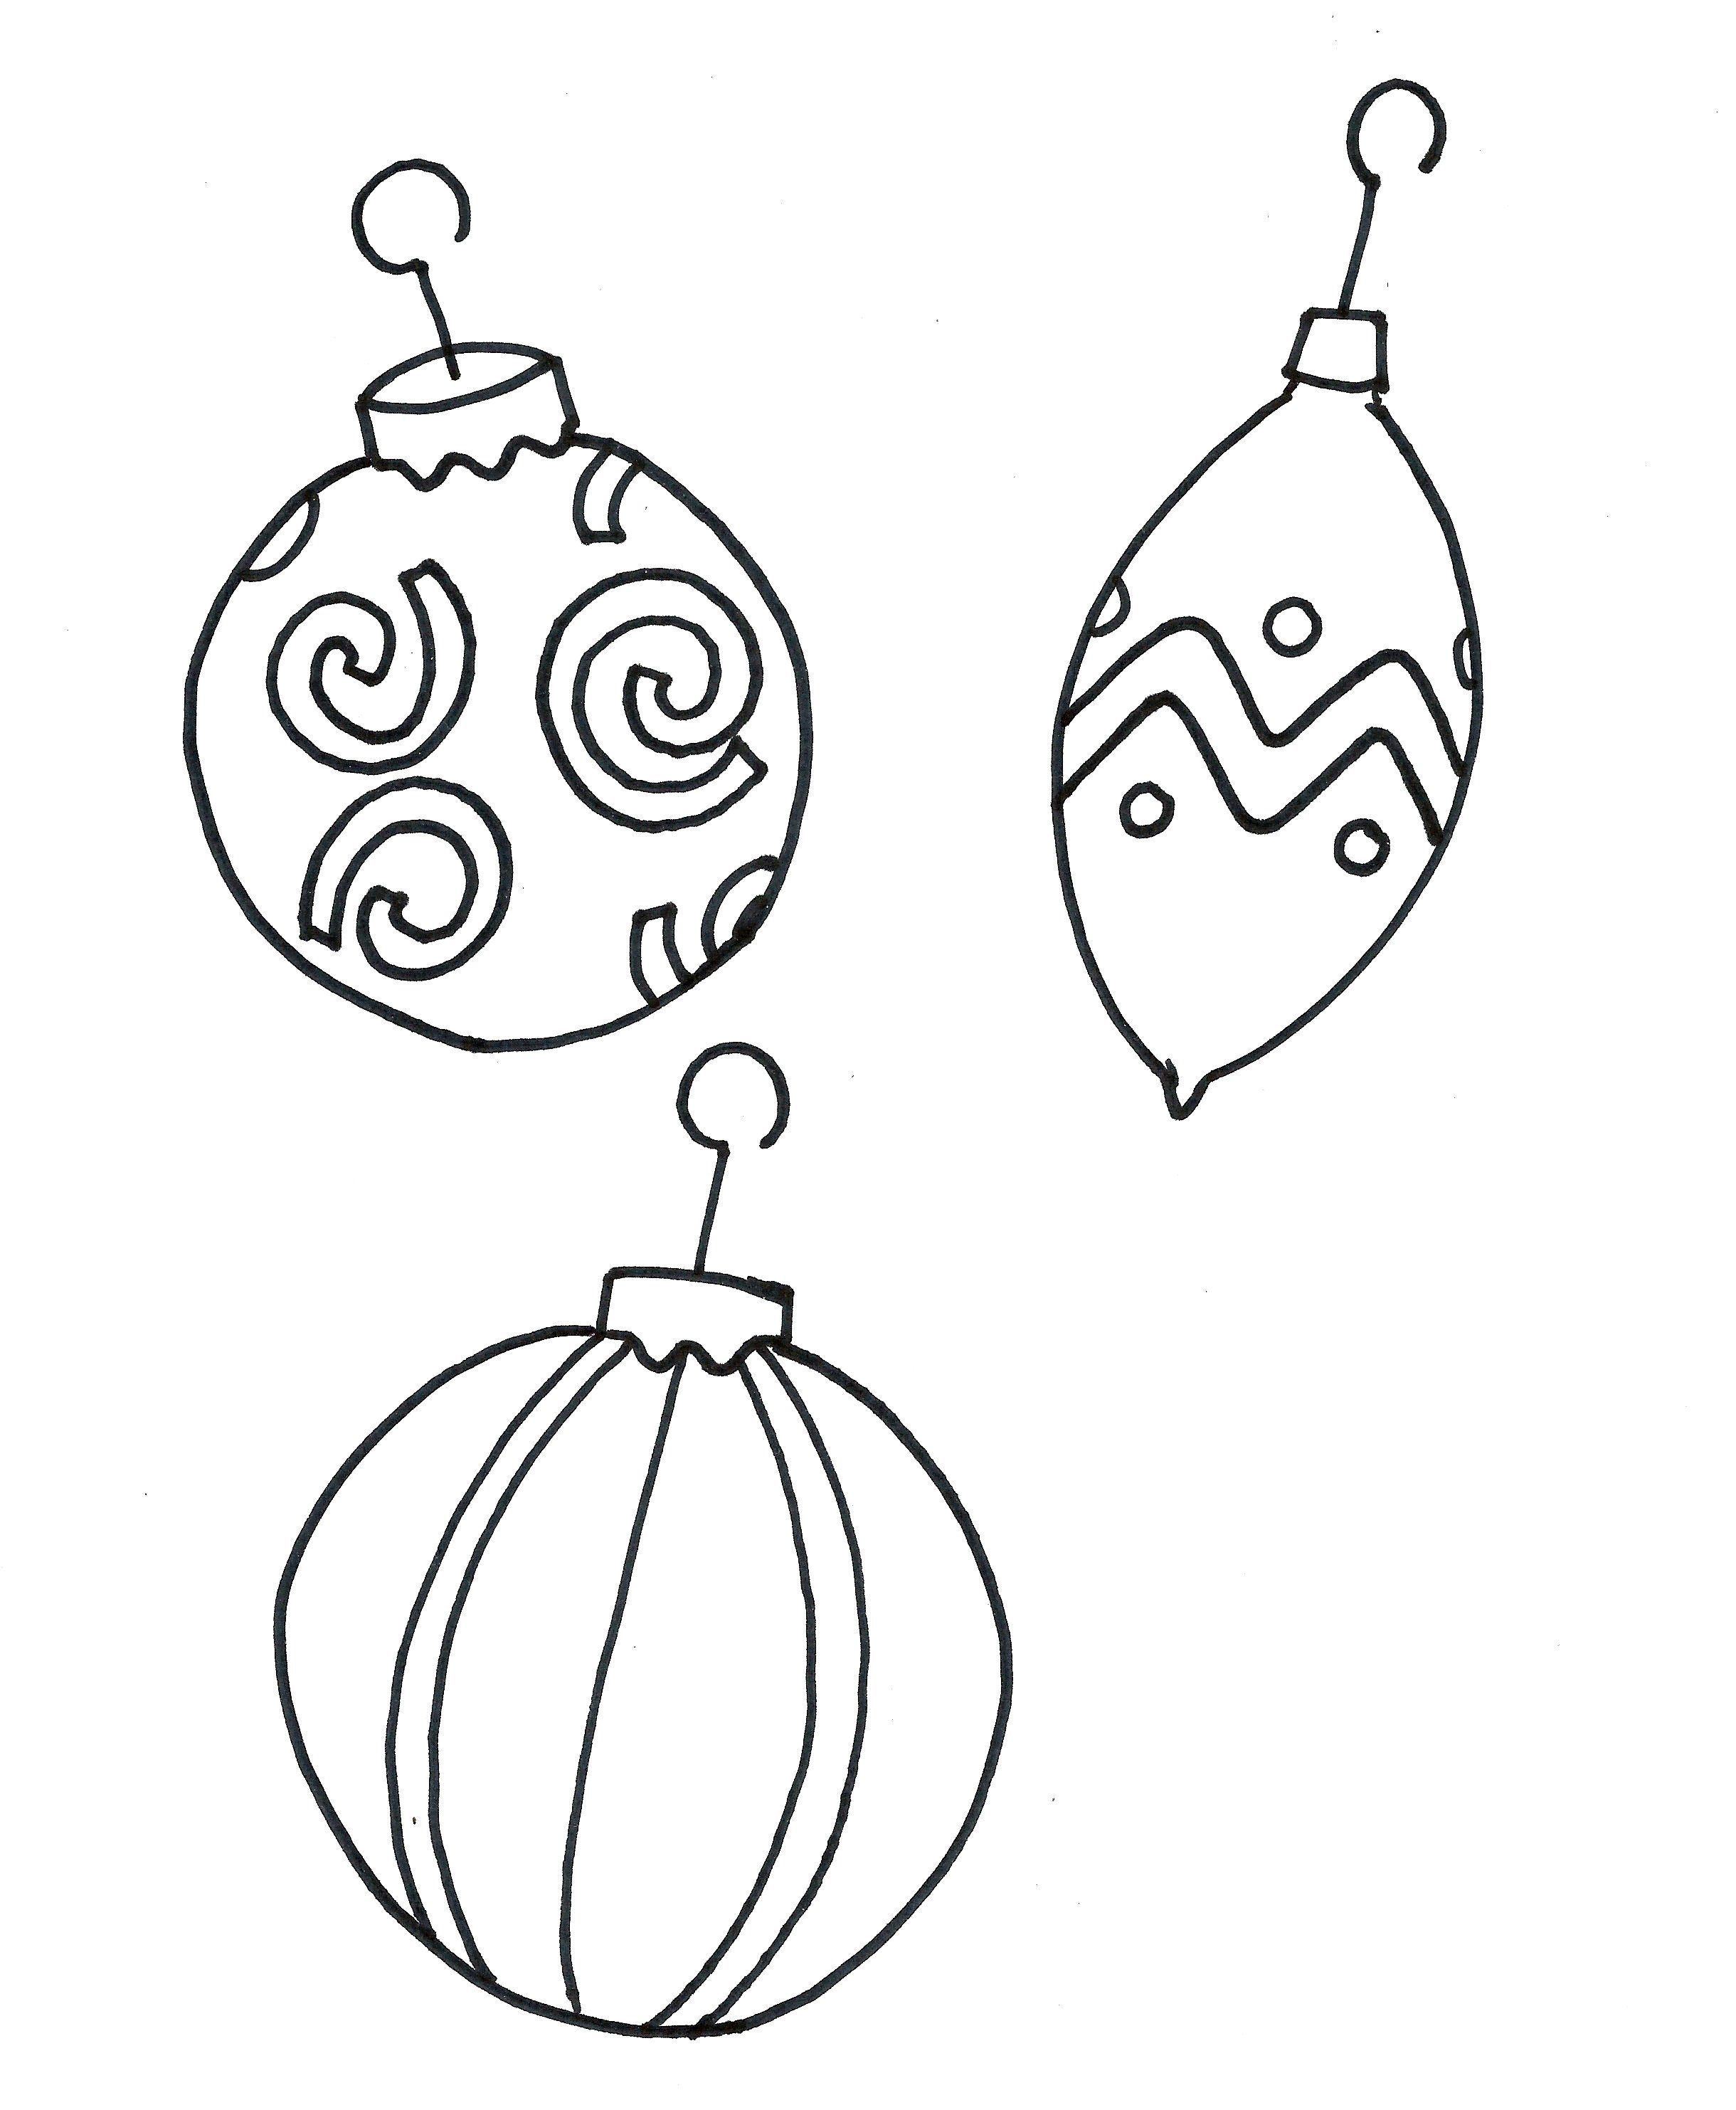 Printable Coloring Pages Christmas Ornament Free | Christmas Crafts ...